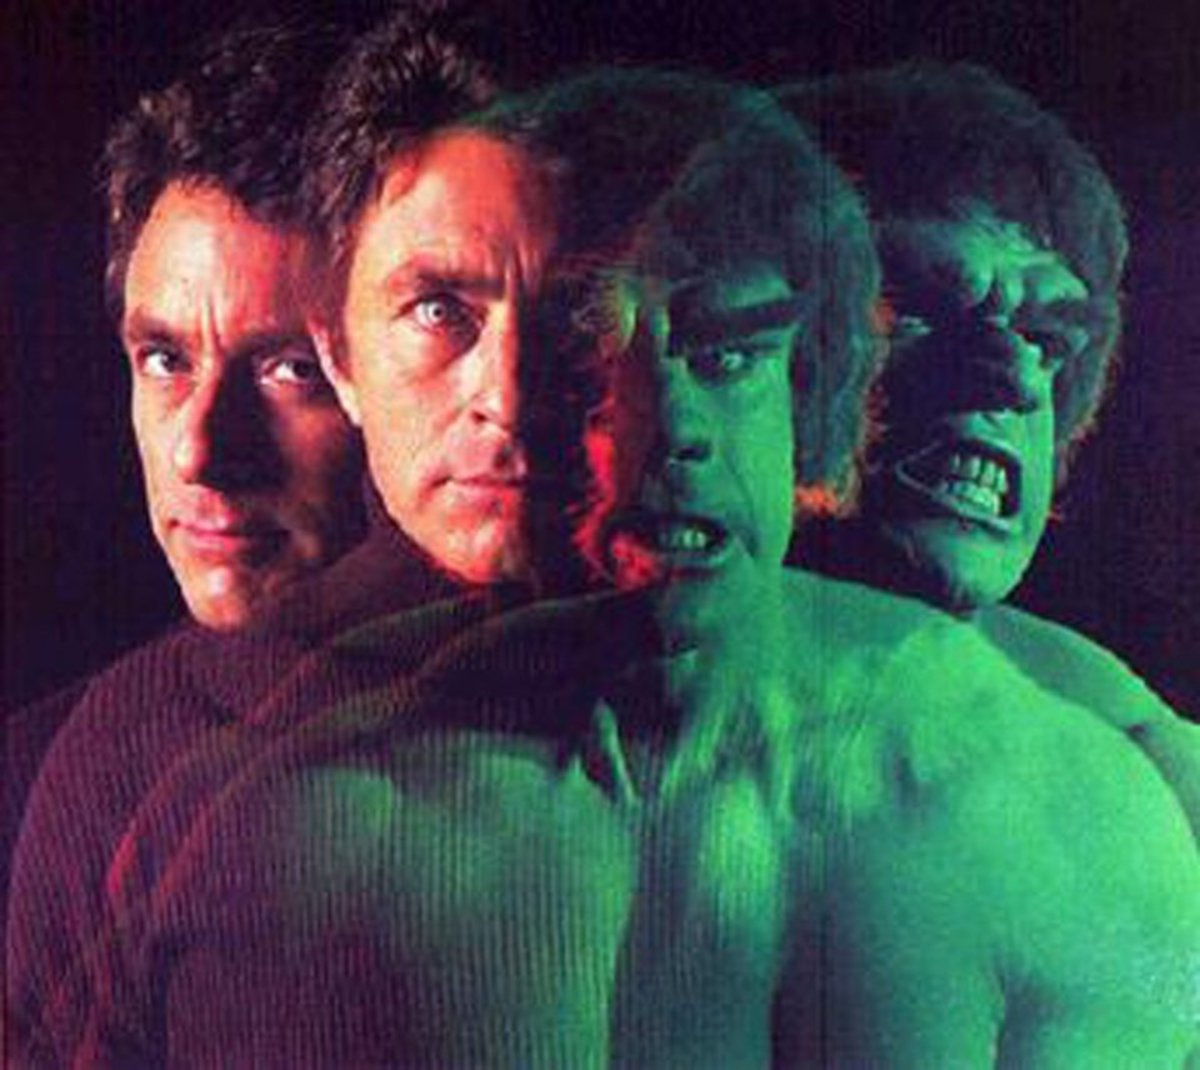 The Incredible Hulk Classic TV Series (1978) - 11 Best Episodes.